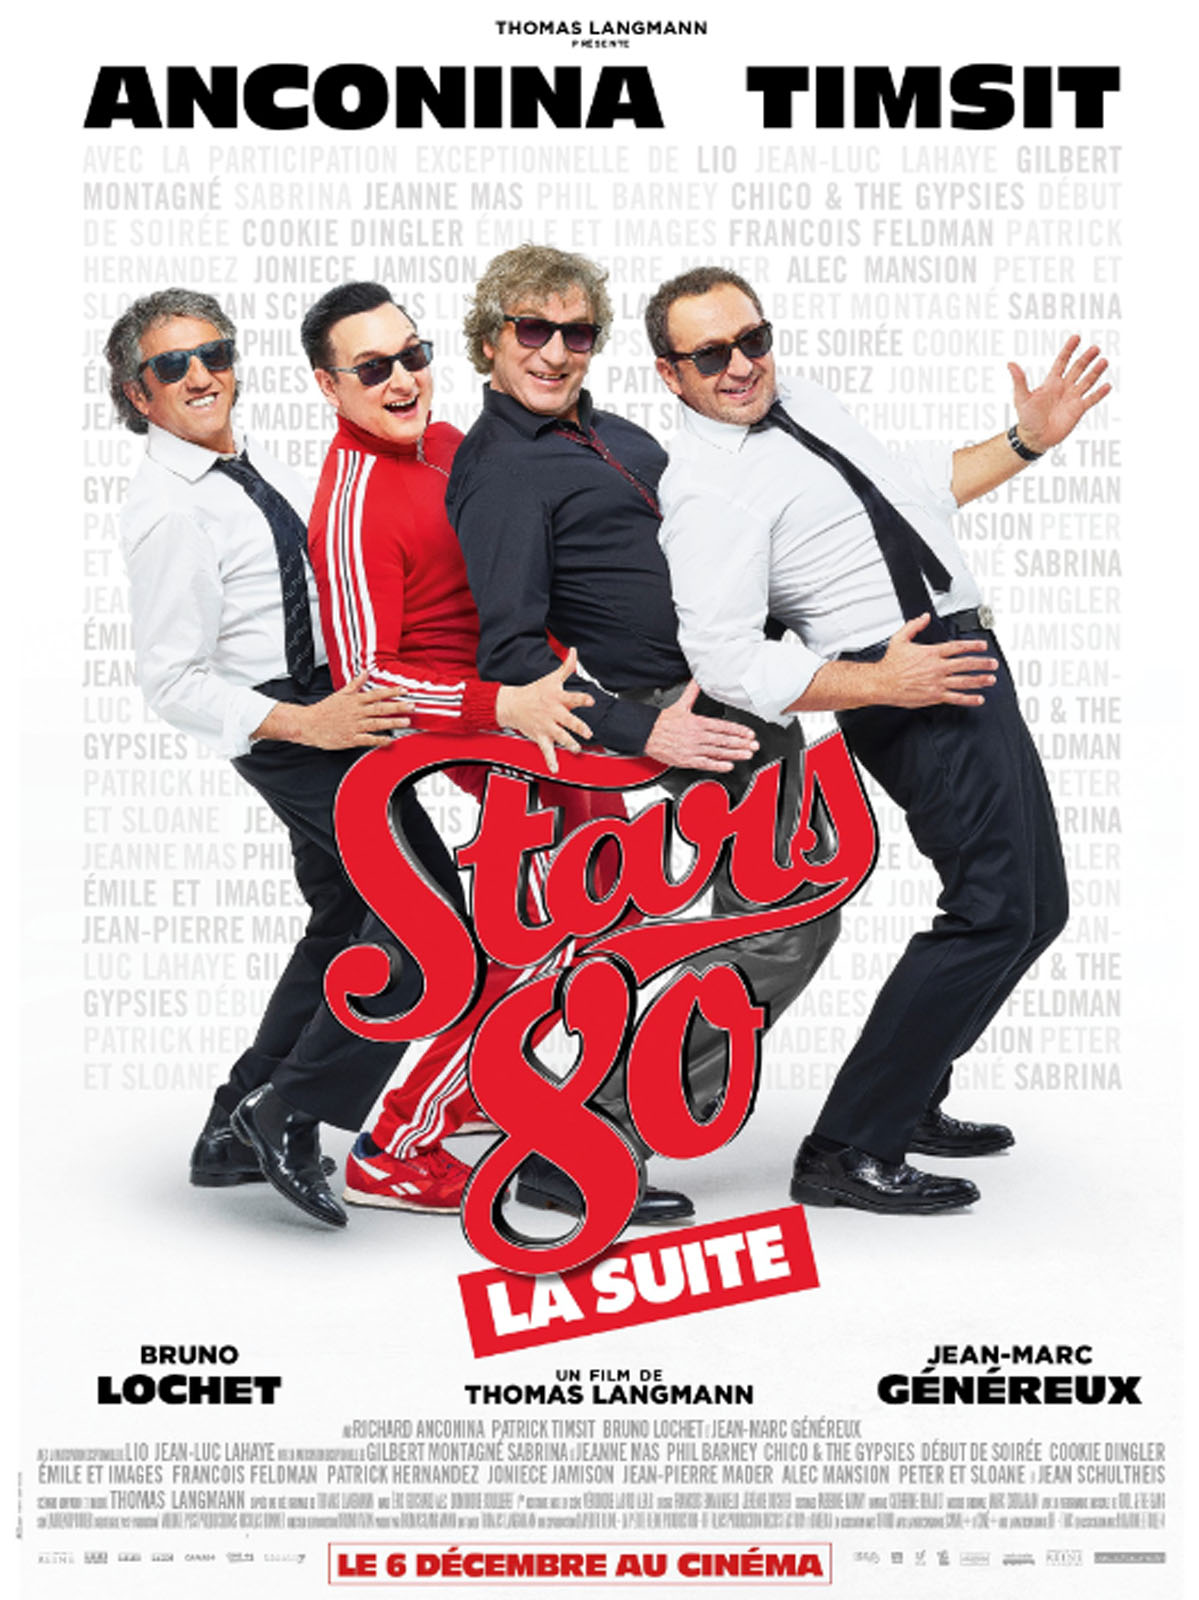 Stars 80 la suite film complet en streaming fullhd for Film maroc chambra 13 complet